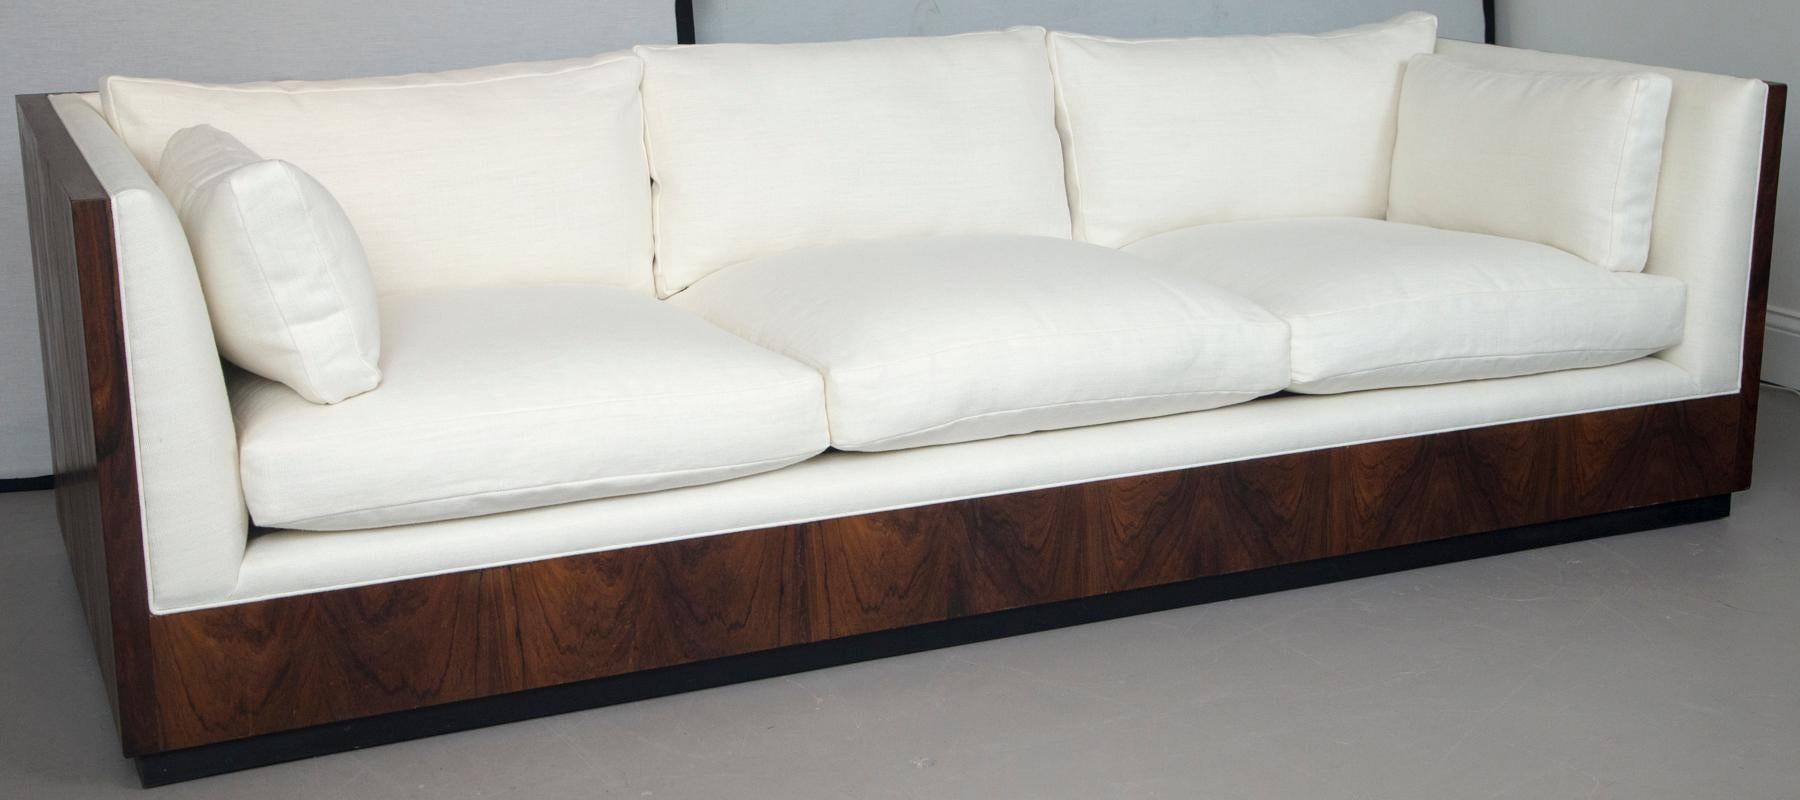 Tremendous Milo Baughman Rosewood Sofa Newly Upholstered In Belgian White Linen Gmtry Best Dining Table And Chair Ideas Images Gmtryco